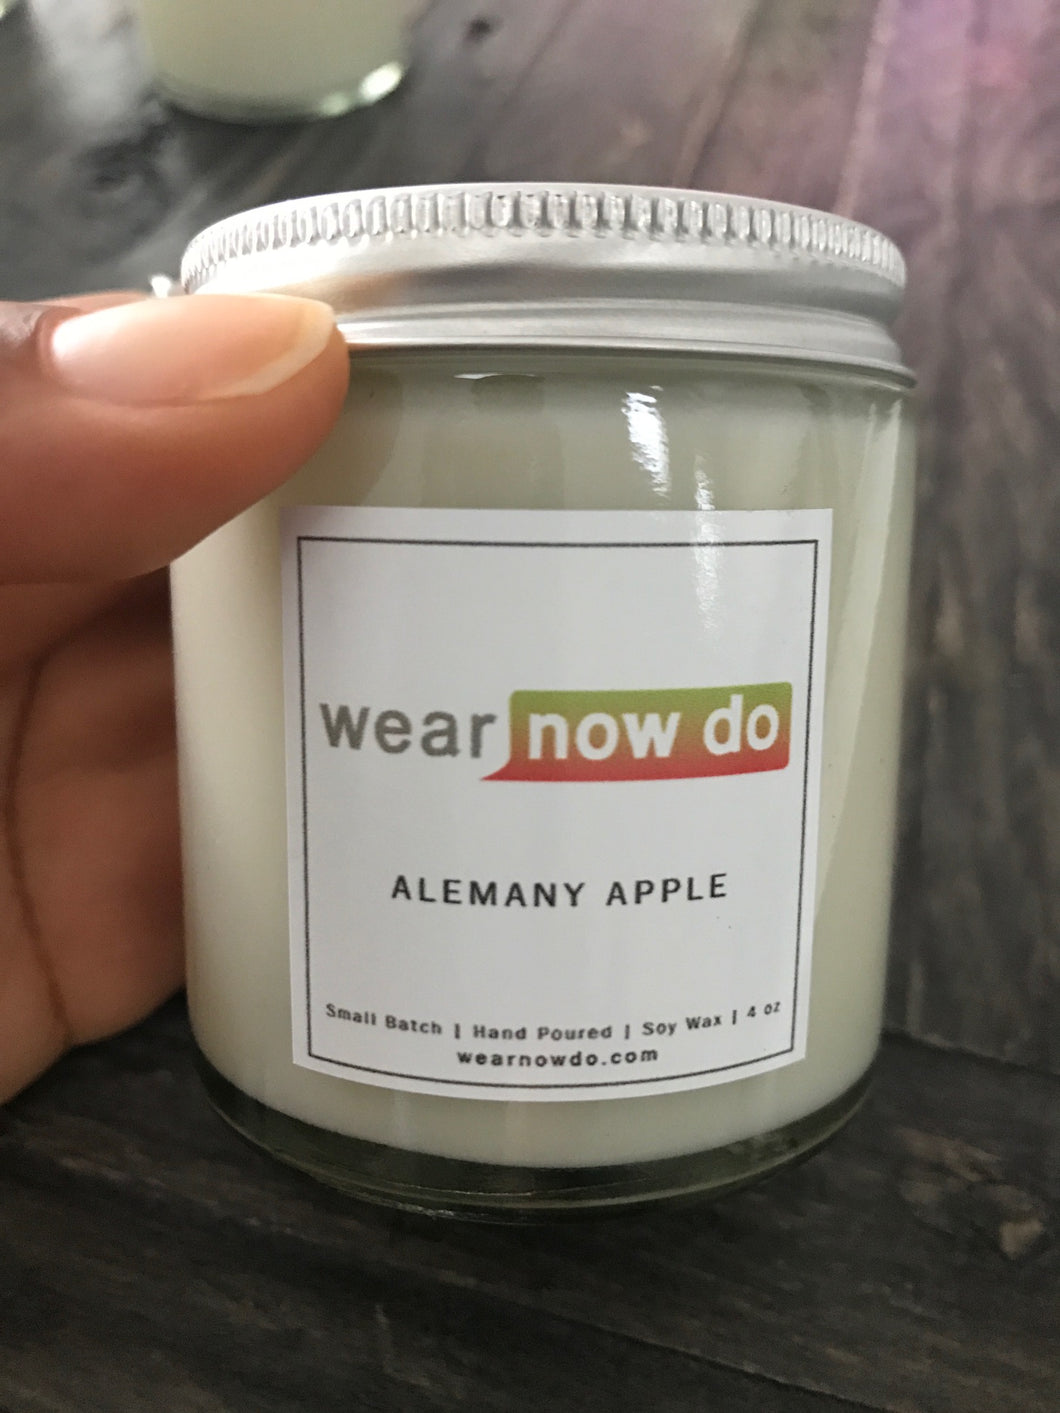 Alemany Apple 100% Soy Wax Candle